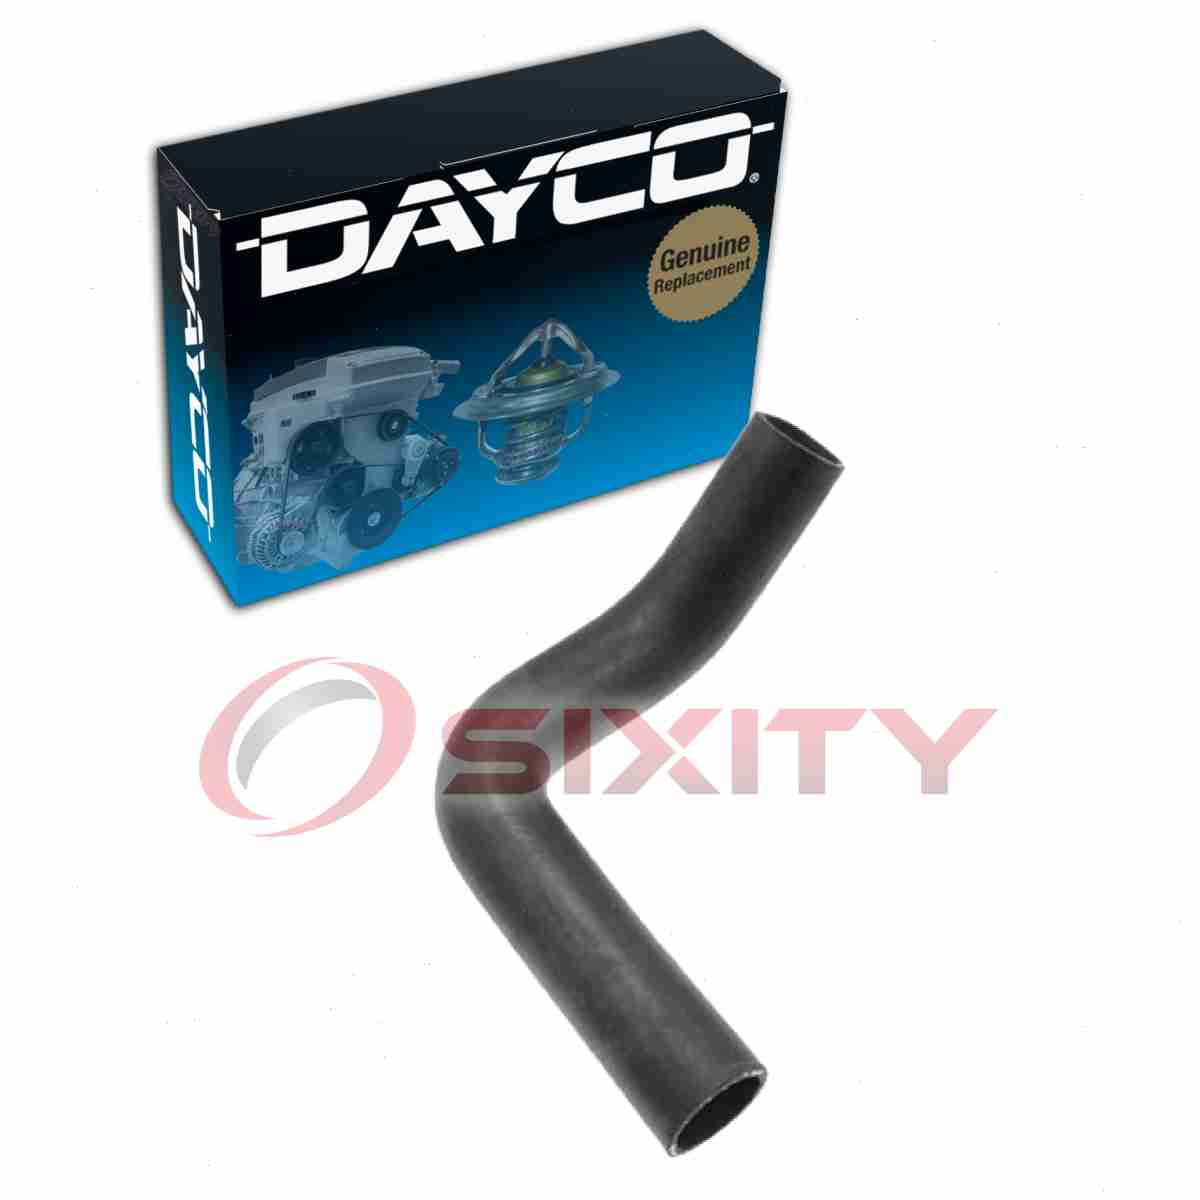 hight resolution of details about dayco lower radiator hose for 1962 buick skylark engine coolant heating vn